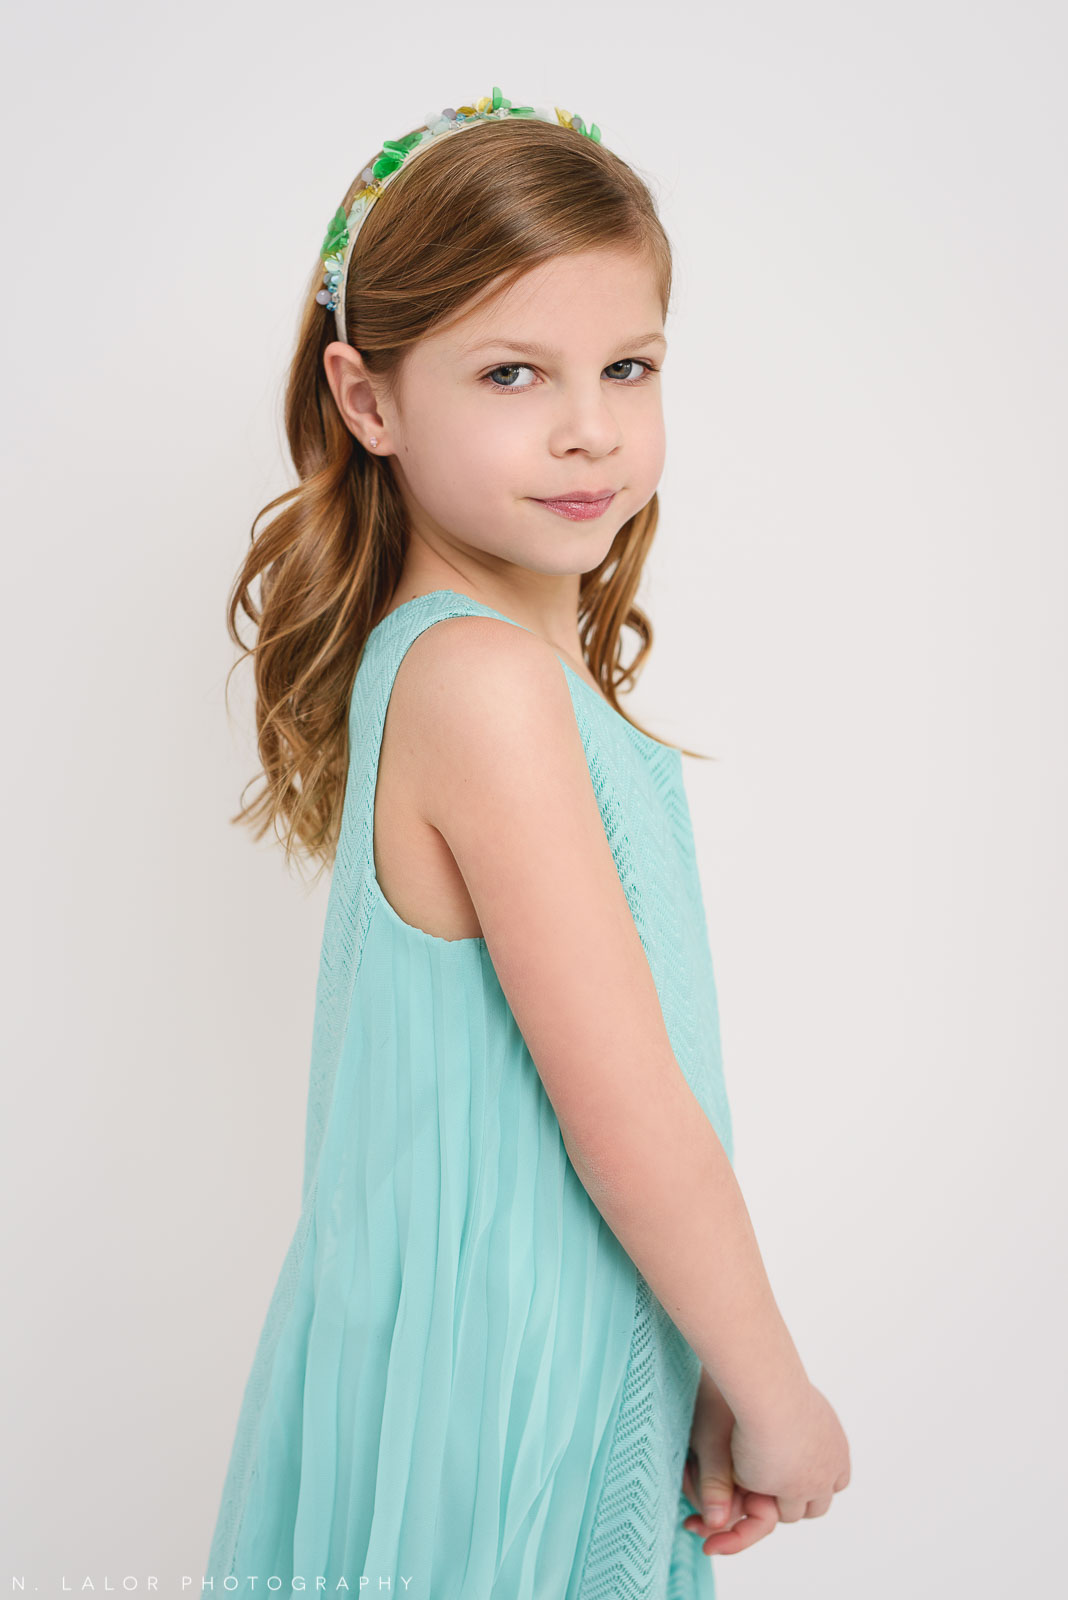 Over the shoulder. Tween photo session with N. Lalor Photography. Studio located in Greenwich, Connecticut.